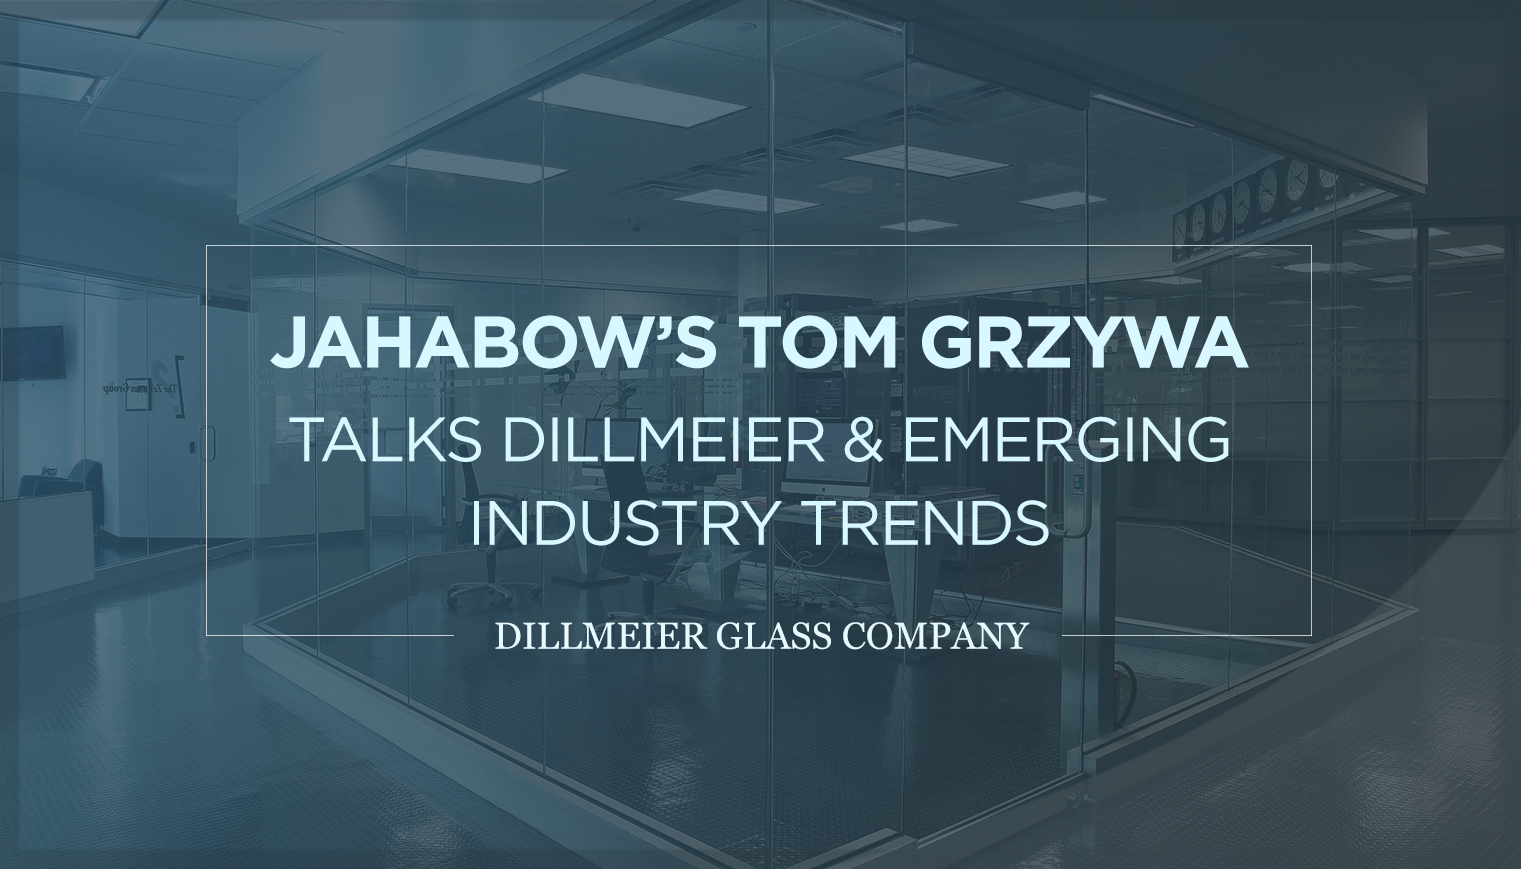 Jahabow's-Tom-Grzywa-Talks-Dillmeier-&-Emerging-Industry-Trends